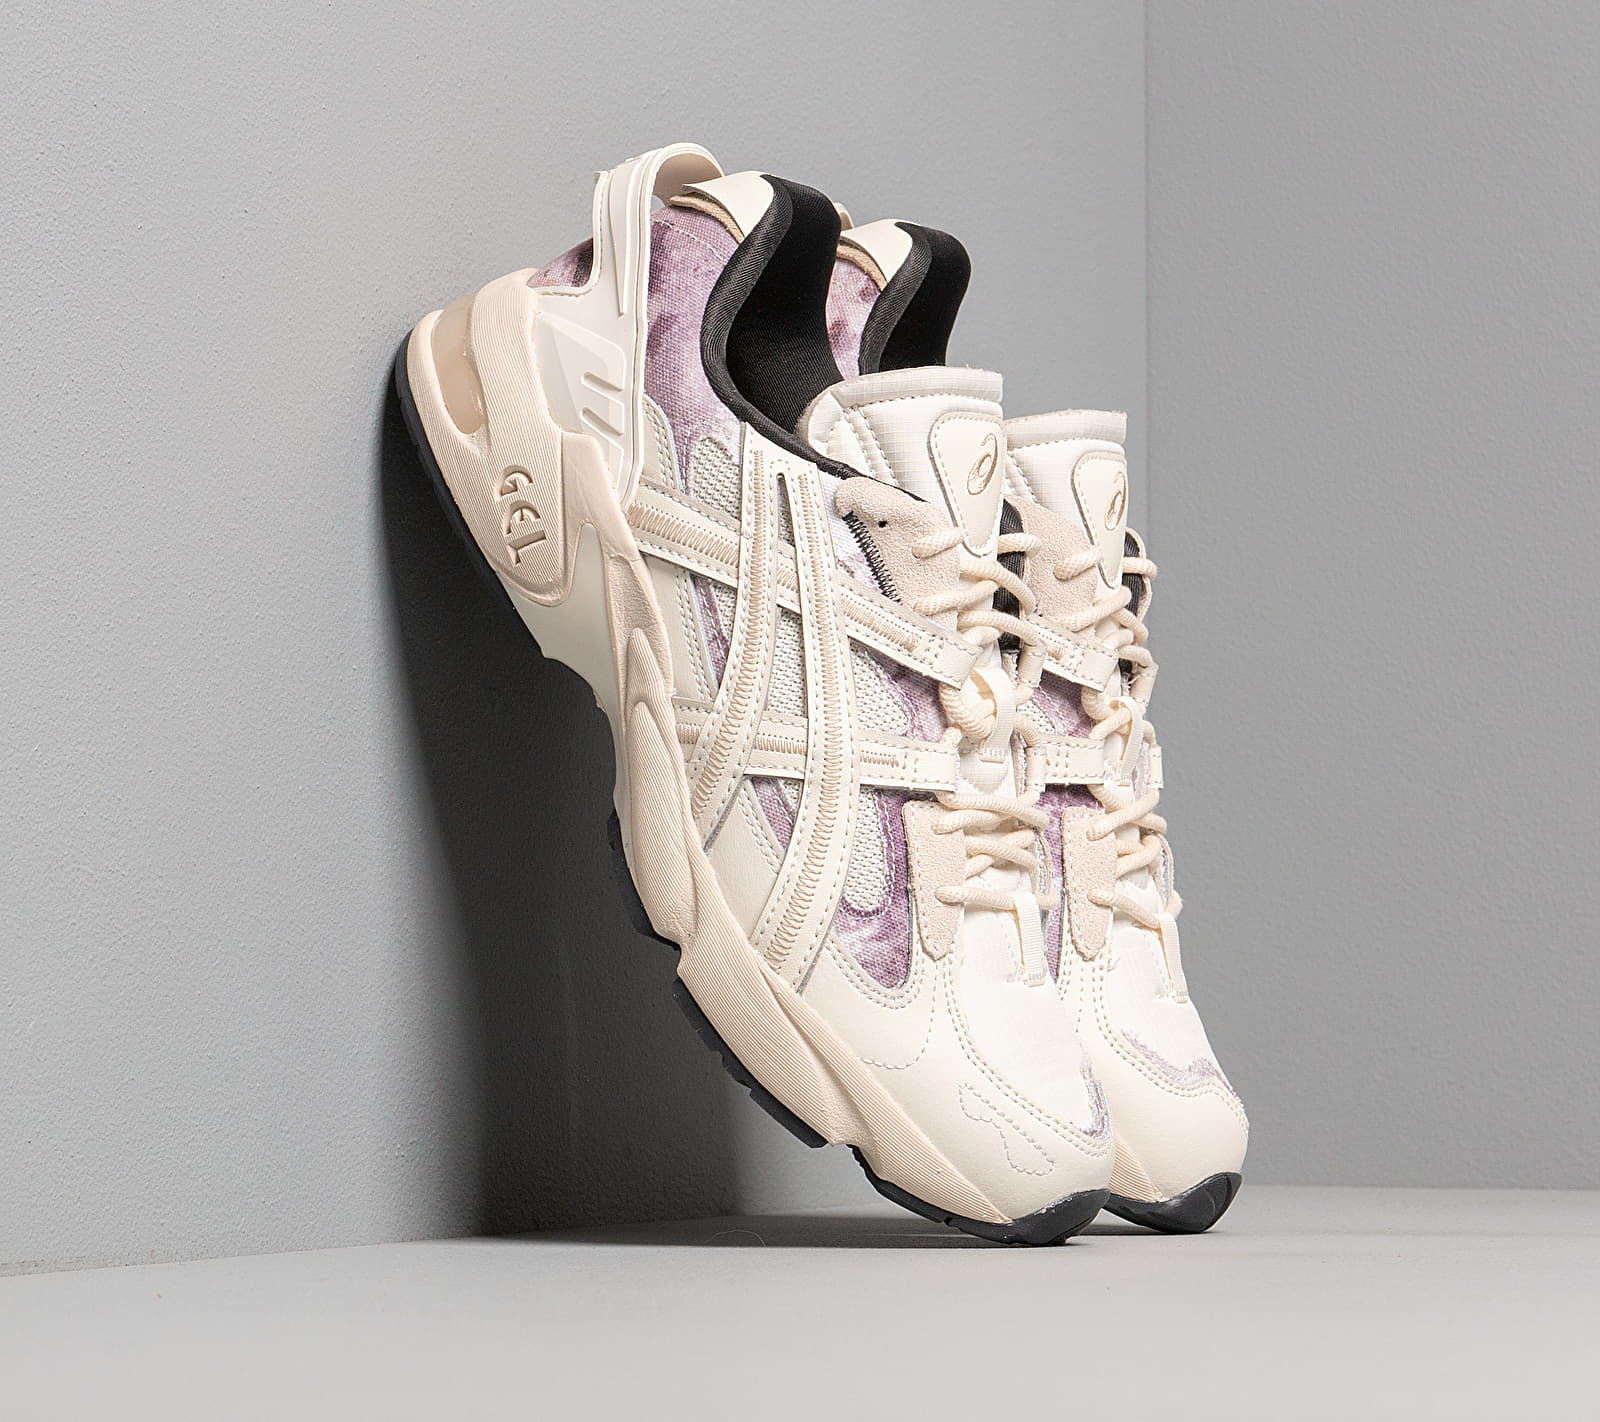 Asics x RE-CONSTRUCTION Gel-Kayano 5 RE Birch/ Birch 1021A411-200